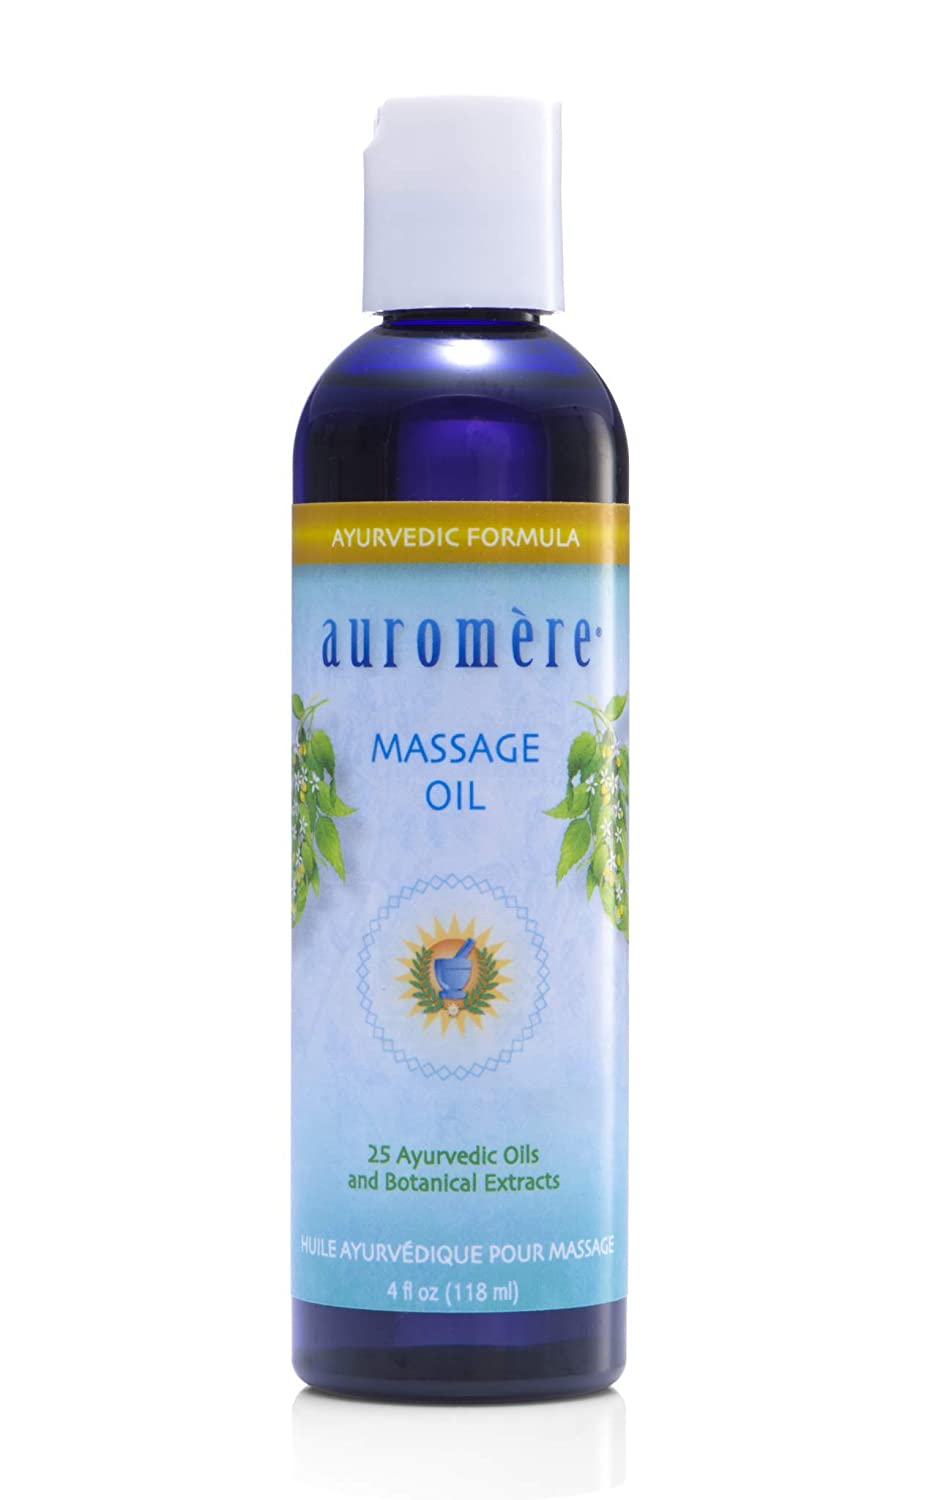 Auromere Ayurvedic Massage Oil - Vegan, Cruelty Free, Natural, Non GMO, with Deep Penetrating Oils and Herbal Extracts (4 fl oz)